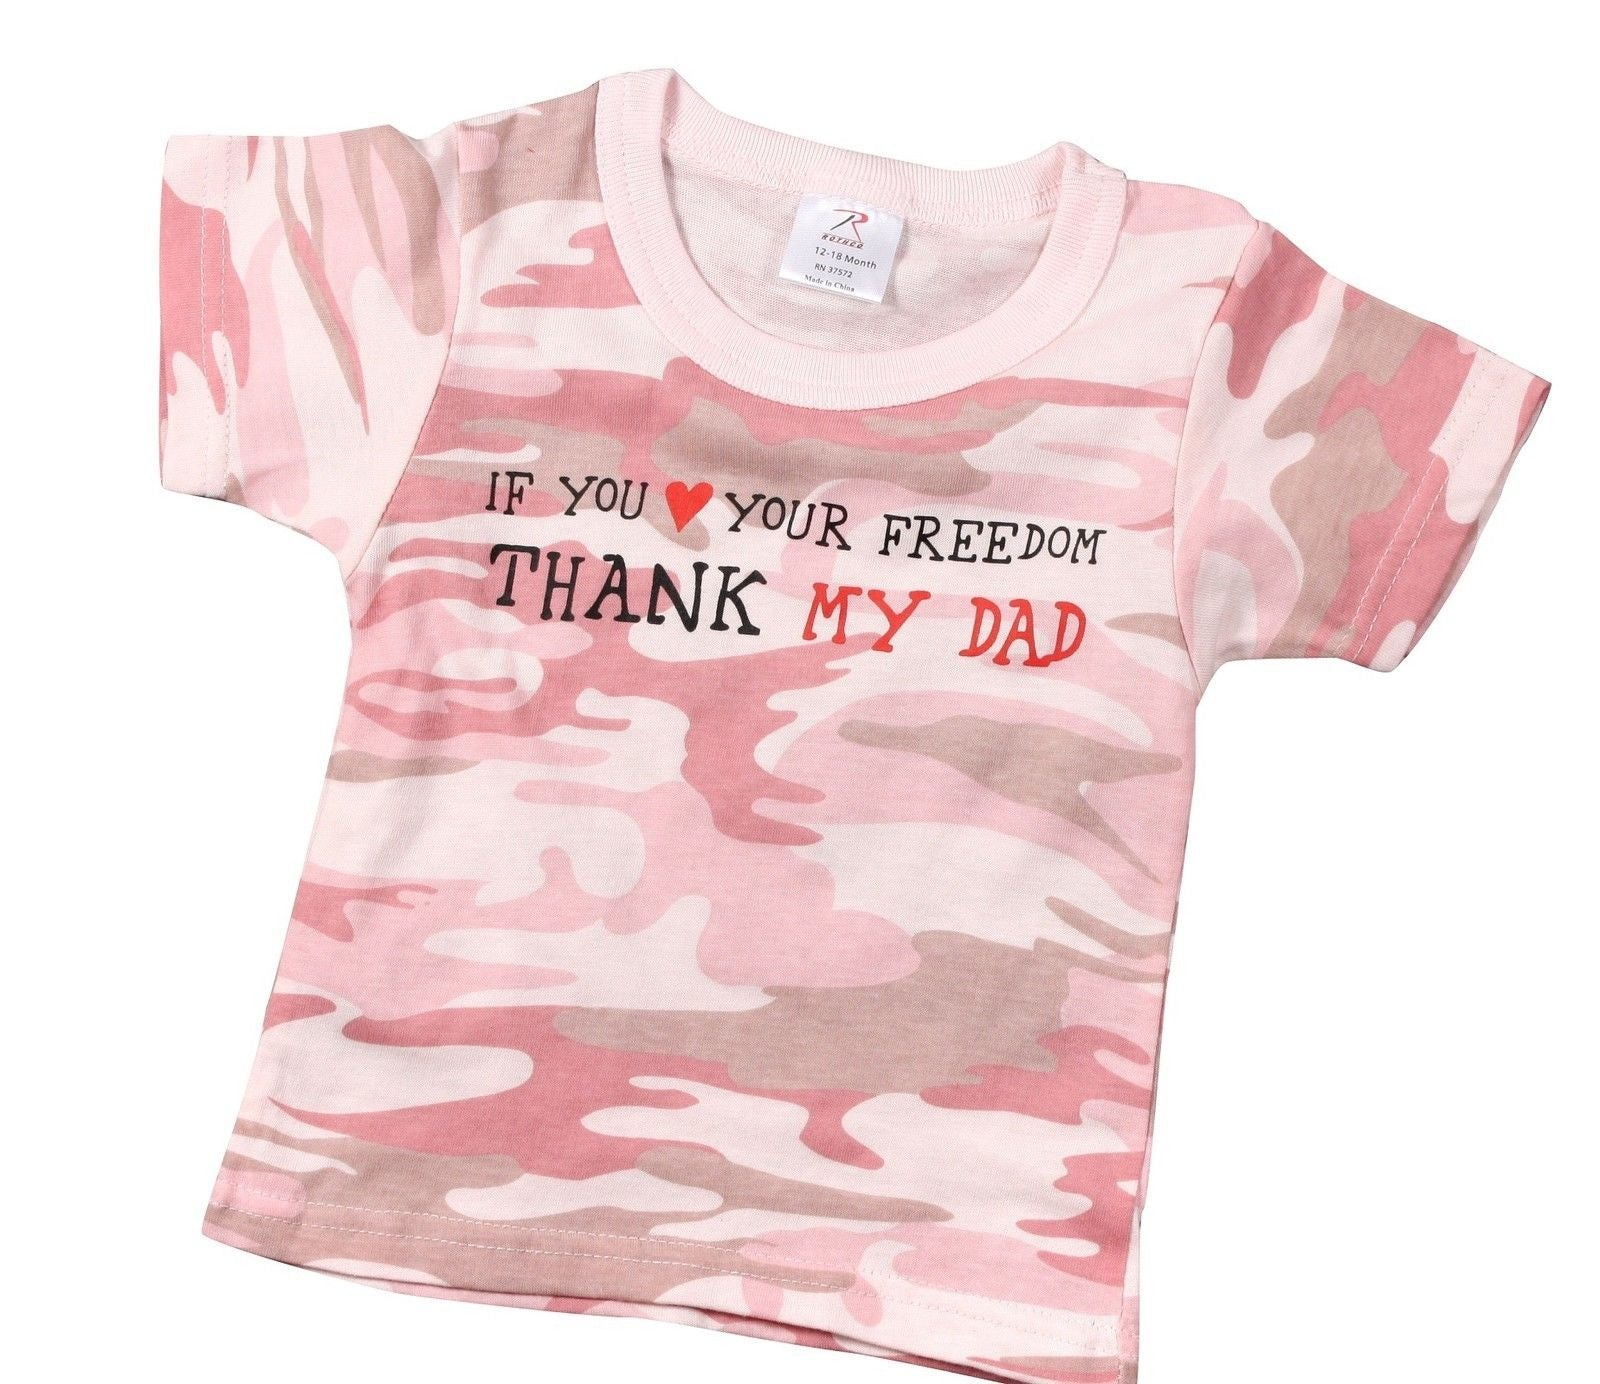 47552cb19fe9 Baby Camouflage Shirt T-Shirt Infant Clothing Tee Rothco Pink or ...